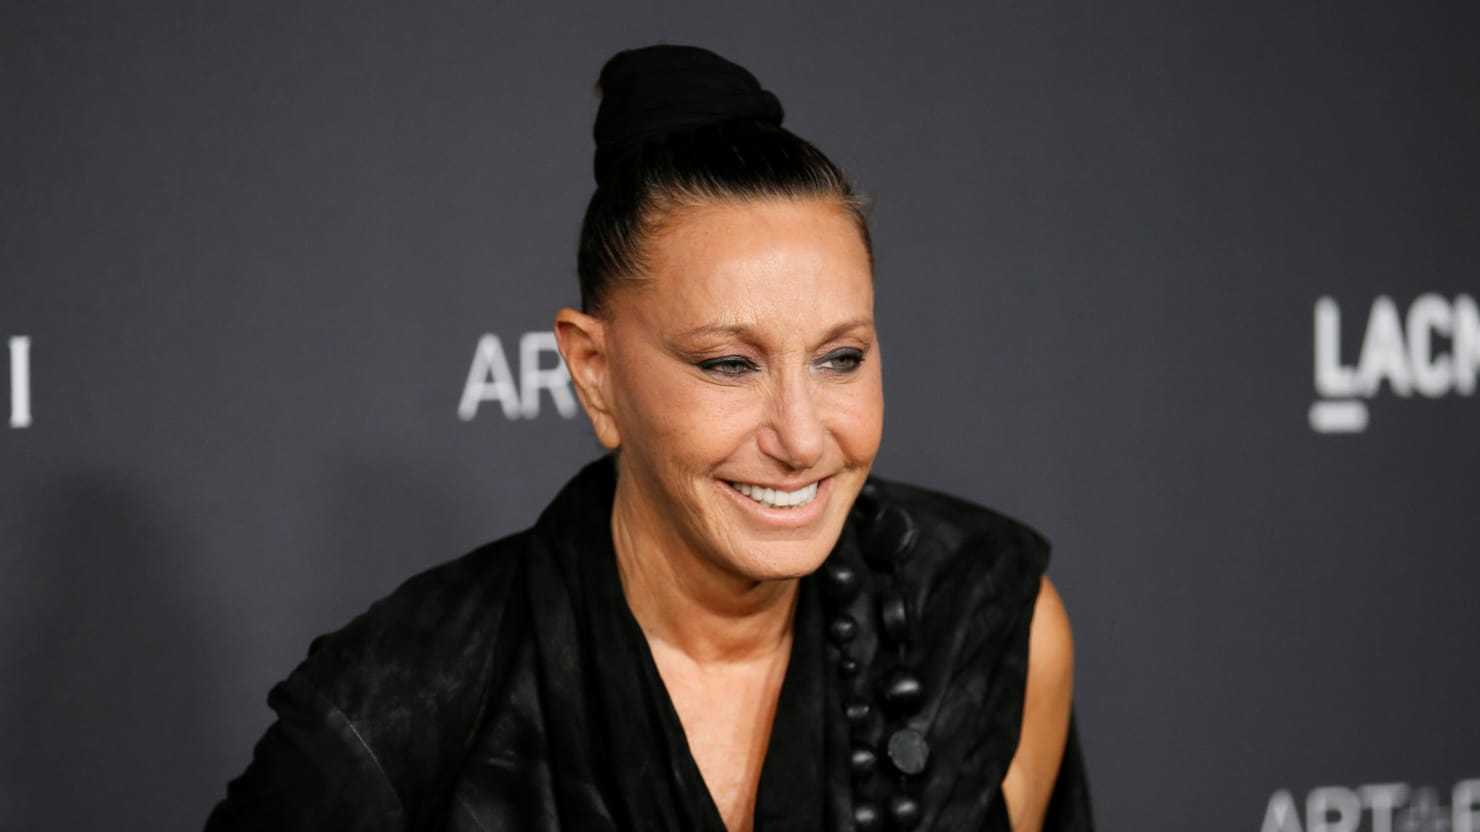 Donna Karan Receives Backlash For Harvey Weinstein Comments | Donna Karan